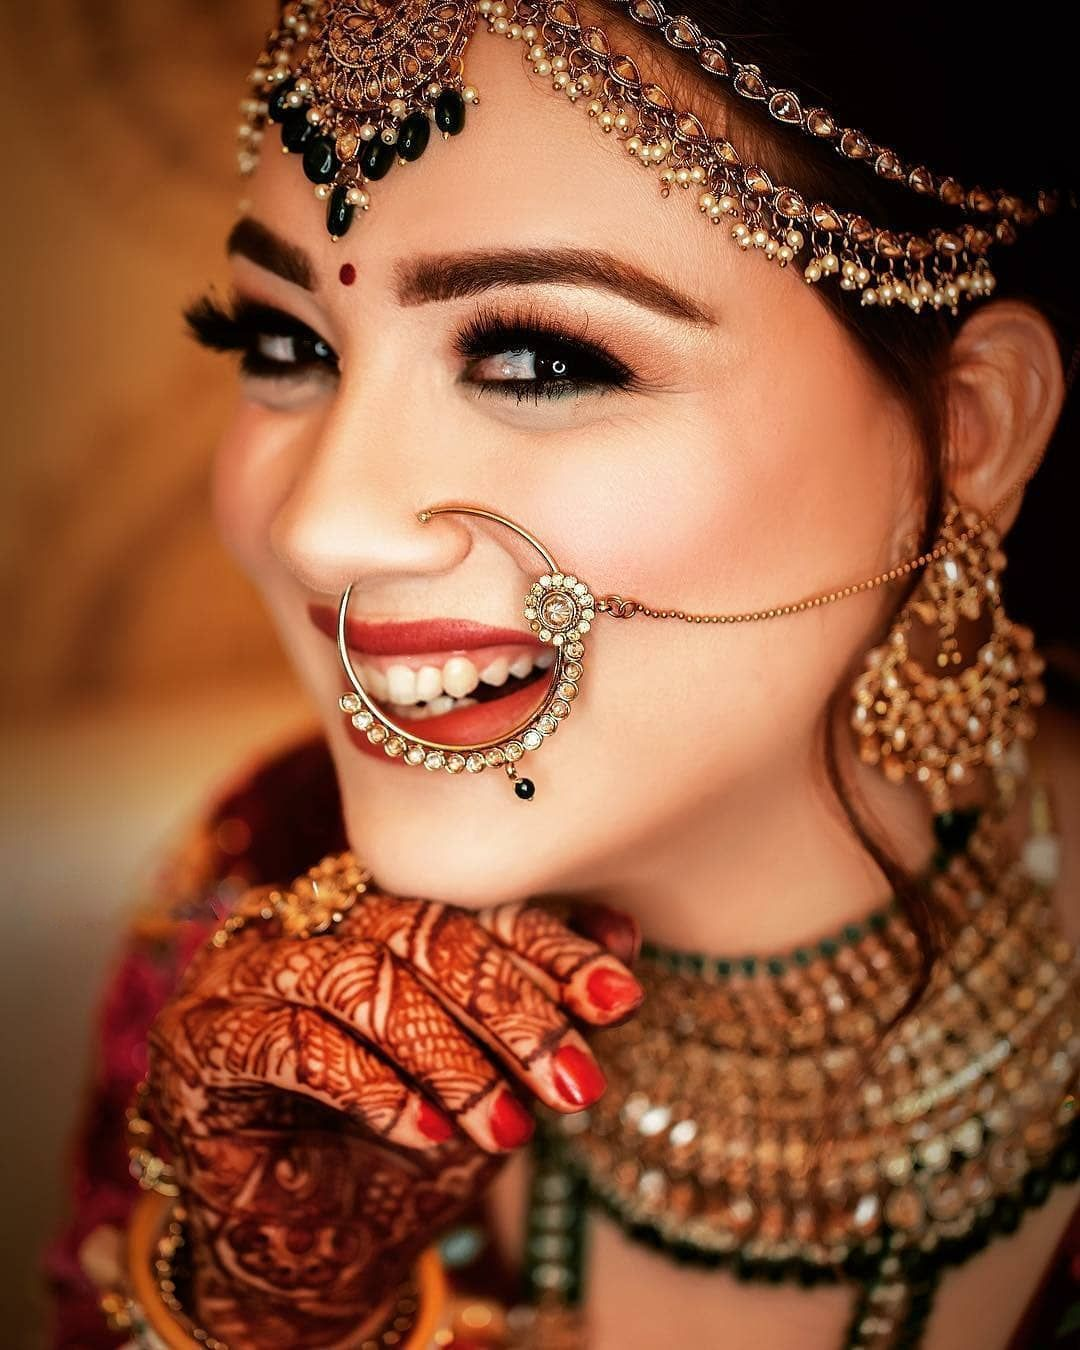 Pin By Raveena Murachpersad On Bridal Outfits In 2020 Indian Wedding Couple Photography Indian Wedding Makeup Bridal Photography Poses